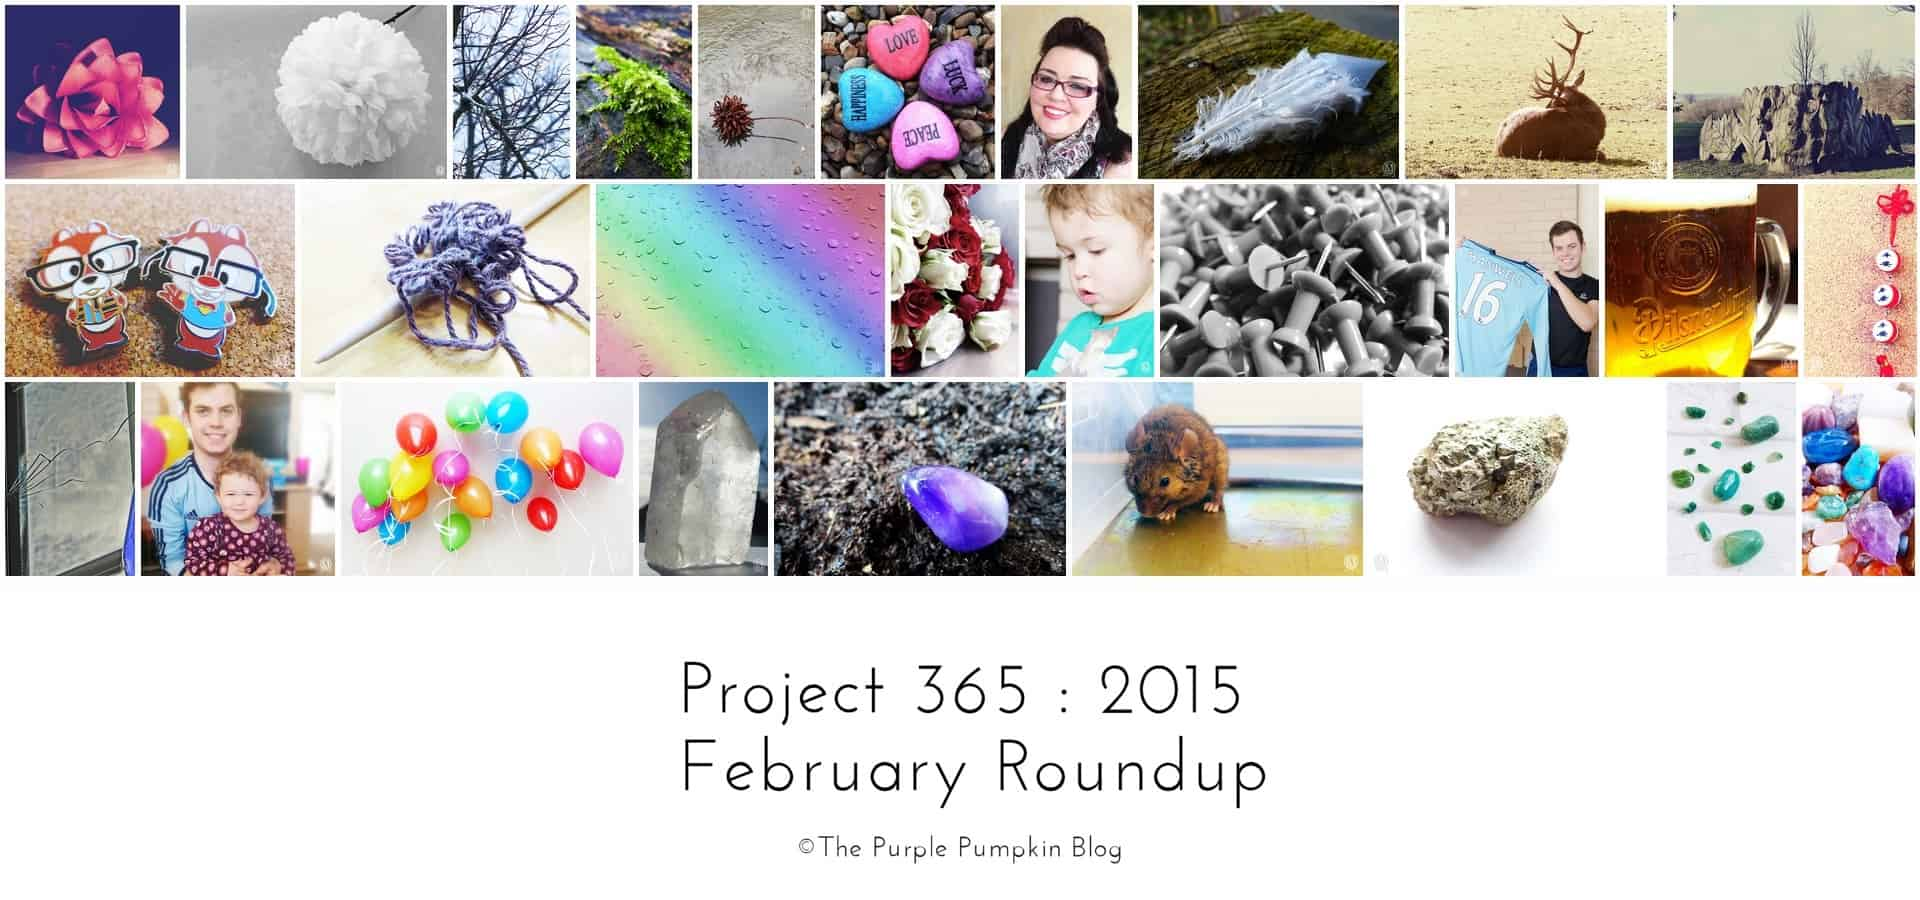 February - Project 365 : 2015 | RoundUp